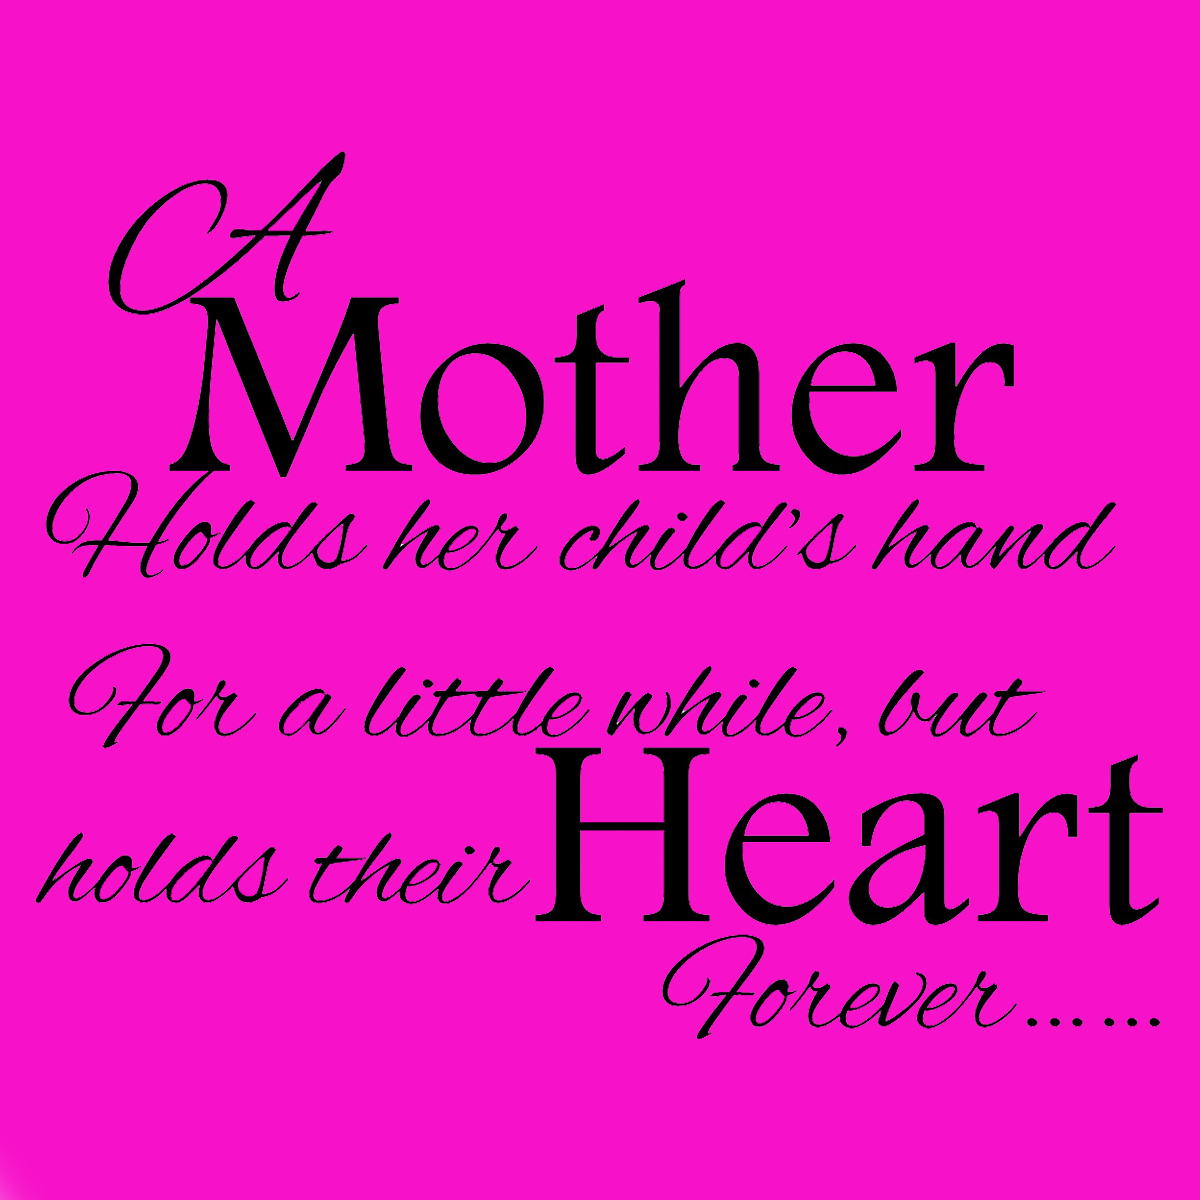 Motherhood Quotes For Facebook Quotesgram